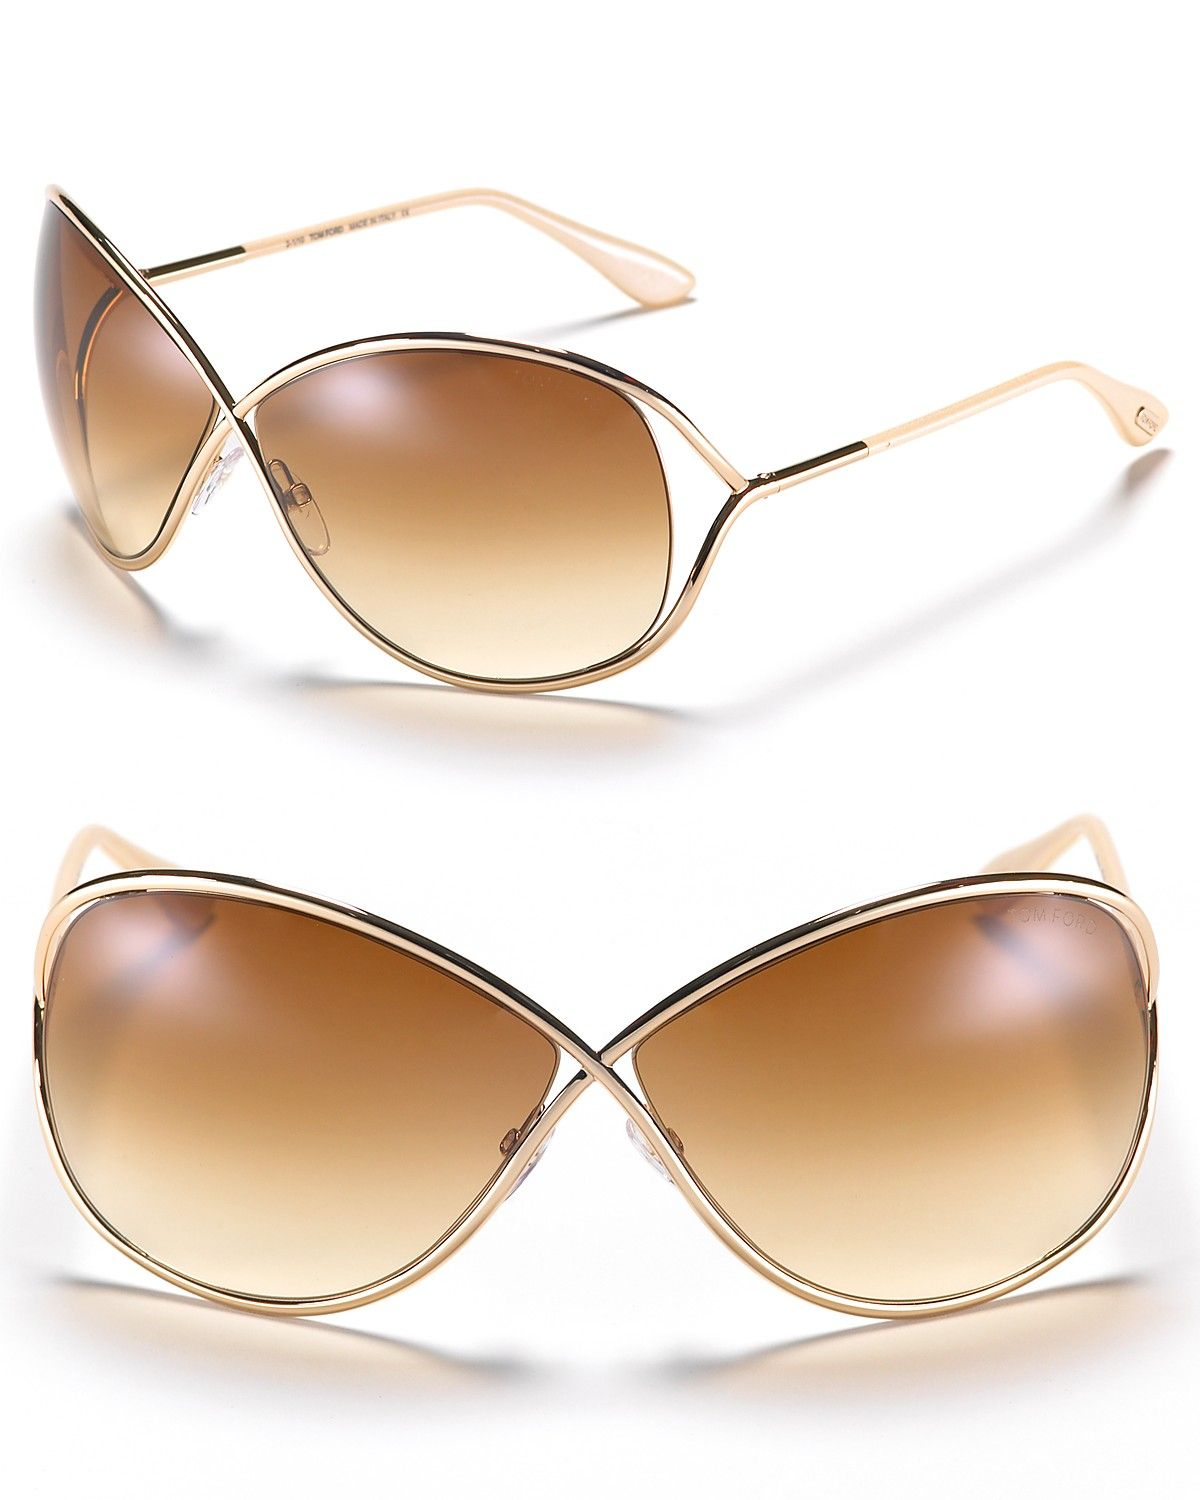 1c825fccc Women's Miranda Sunglasses, 63mm | Fashion Diva Wanna Be | Tom ford ...